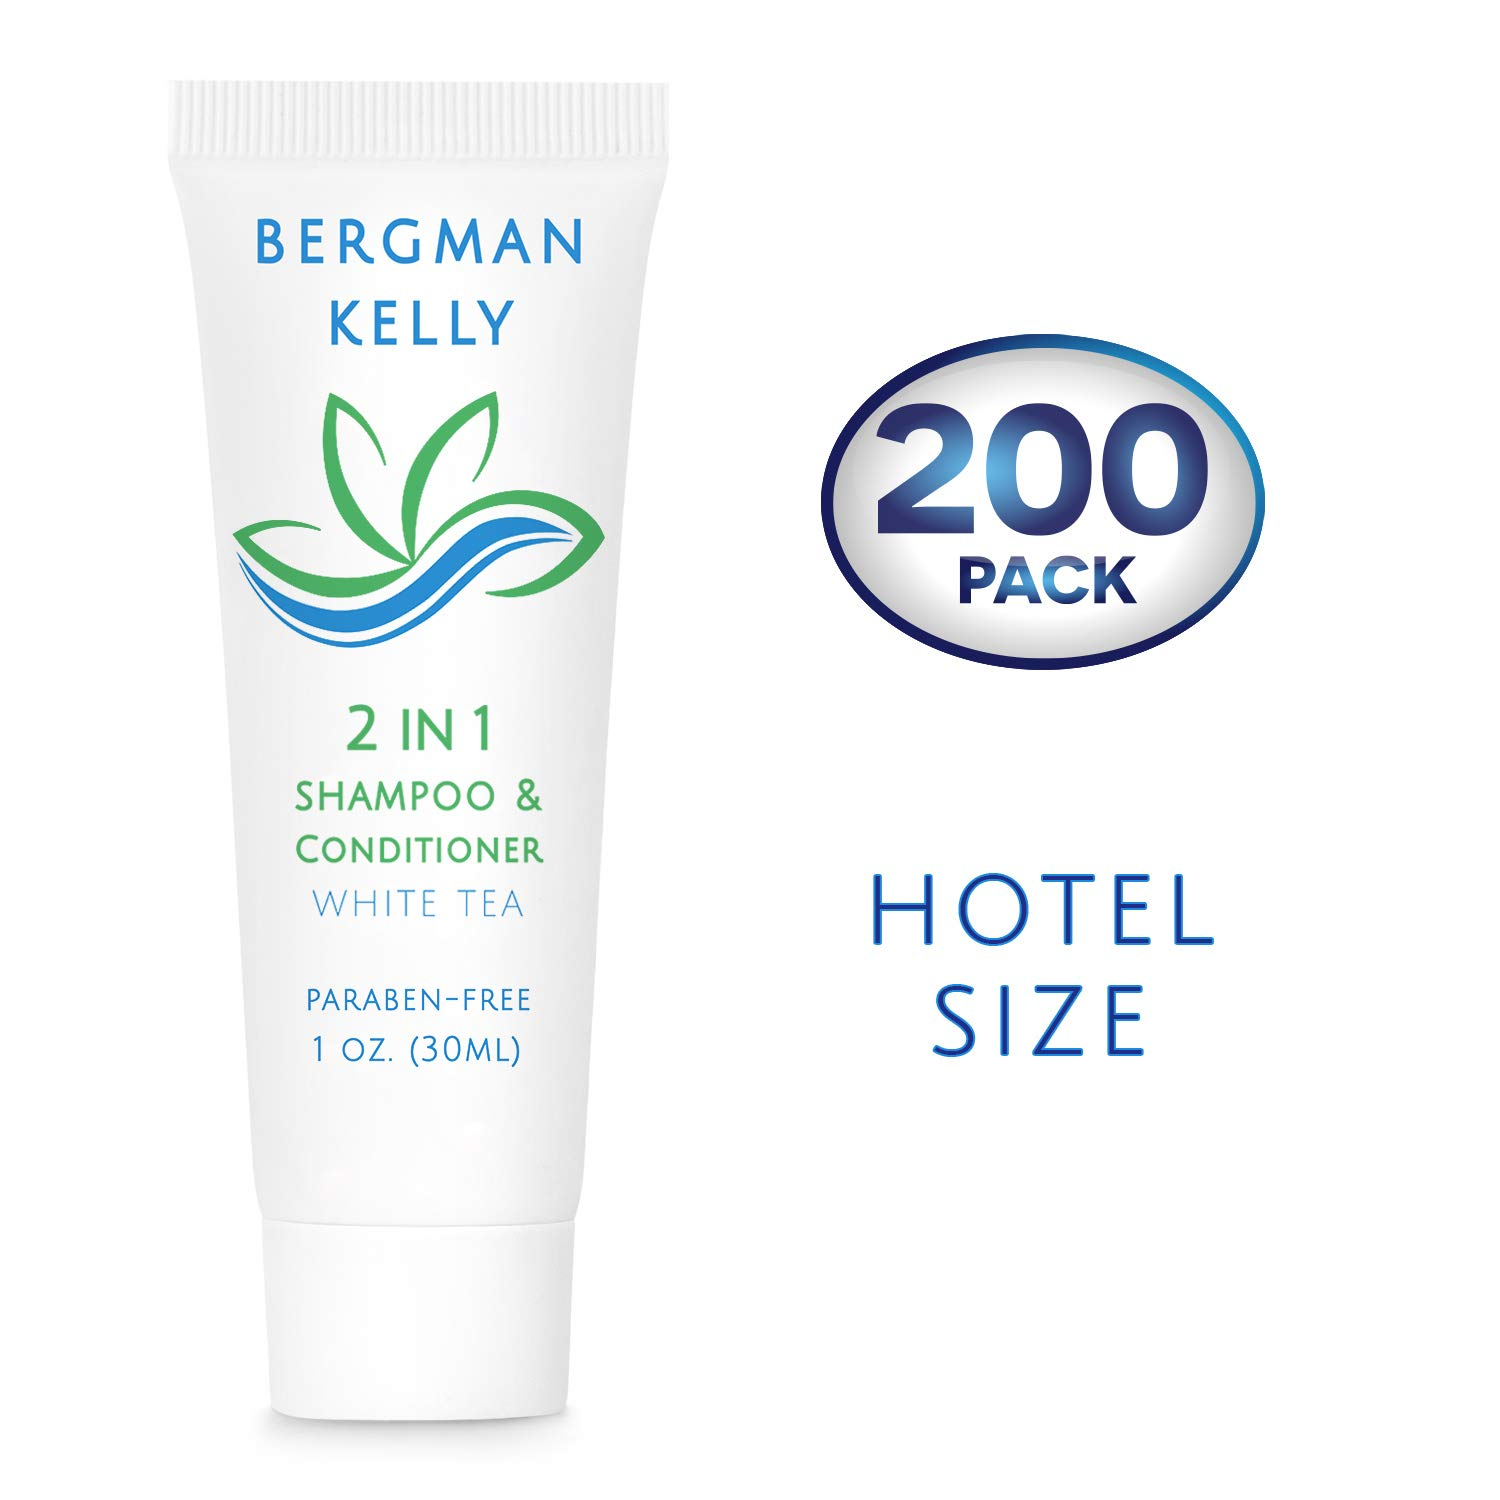 BERGMAN KELLY Travel Size Shampoo & Conditioner 2 in 1 (1 Fl Oz, 200 PK, White Tea), Delight Your Guests with Revitalizing and Refreshing Shampoo Amenities, Quality Small Size Hotel Toiletries in Bulk by BERGMAN KELLY